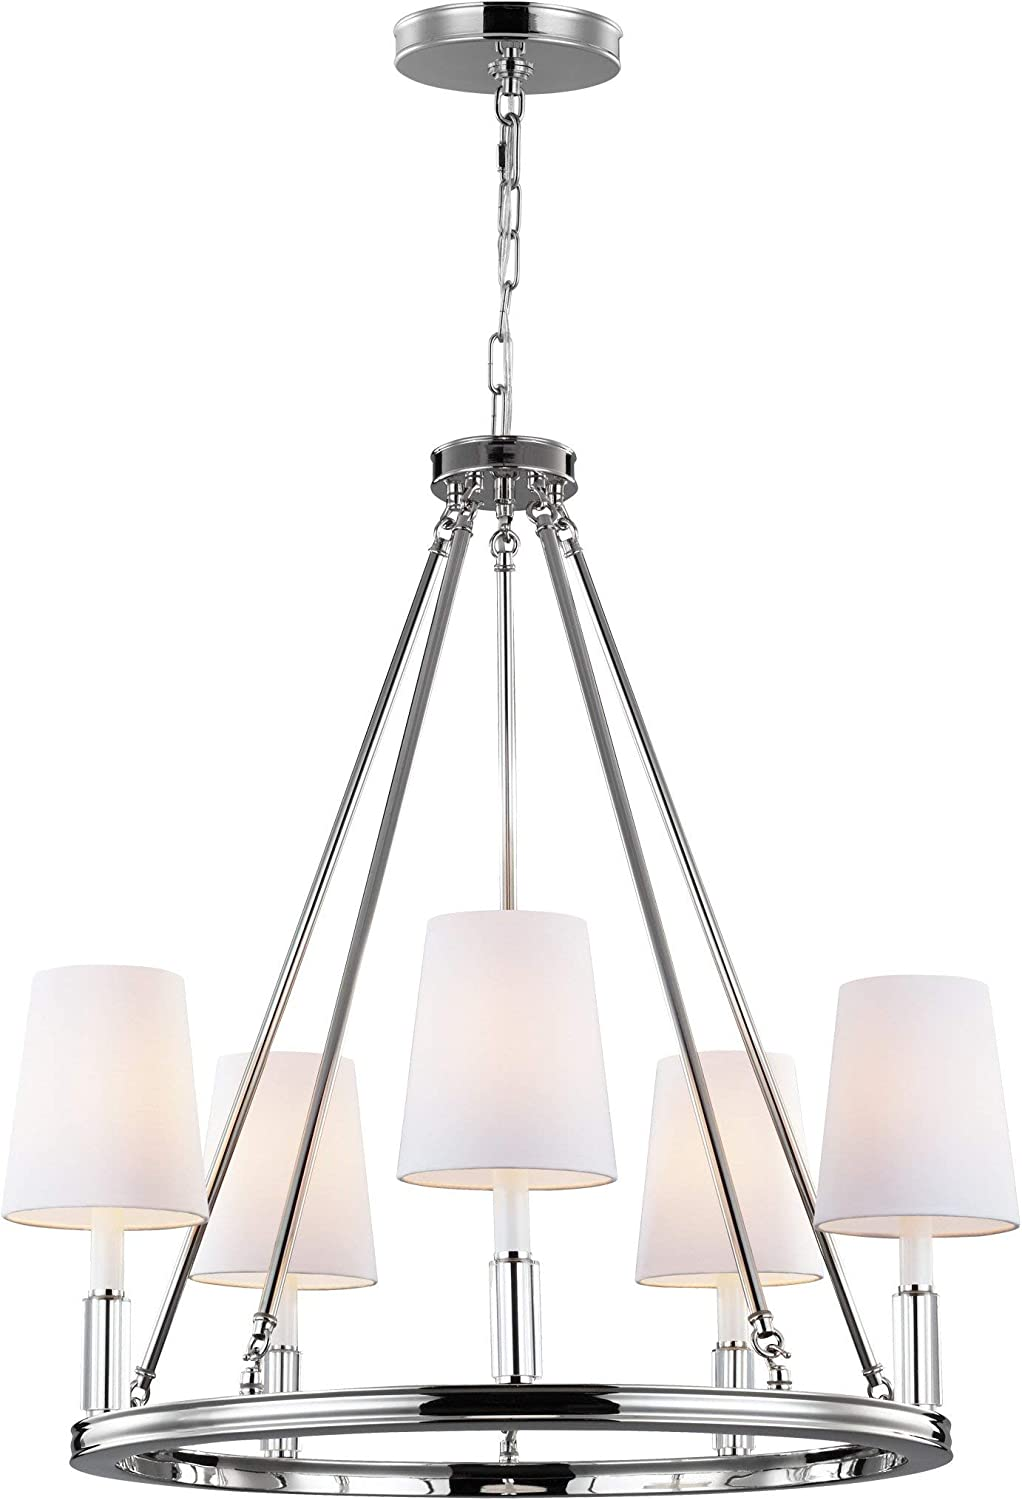 Amazon Com Feiss F2922 5pn Lismore Fabric Shade Candle Chandelier Lighting Chrome 5 Light 28 Dia X 30 H 300watts Home Improvement